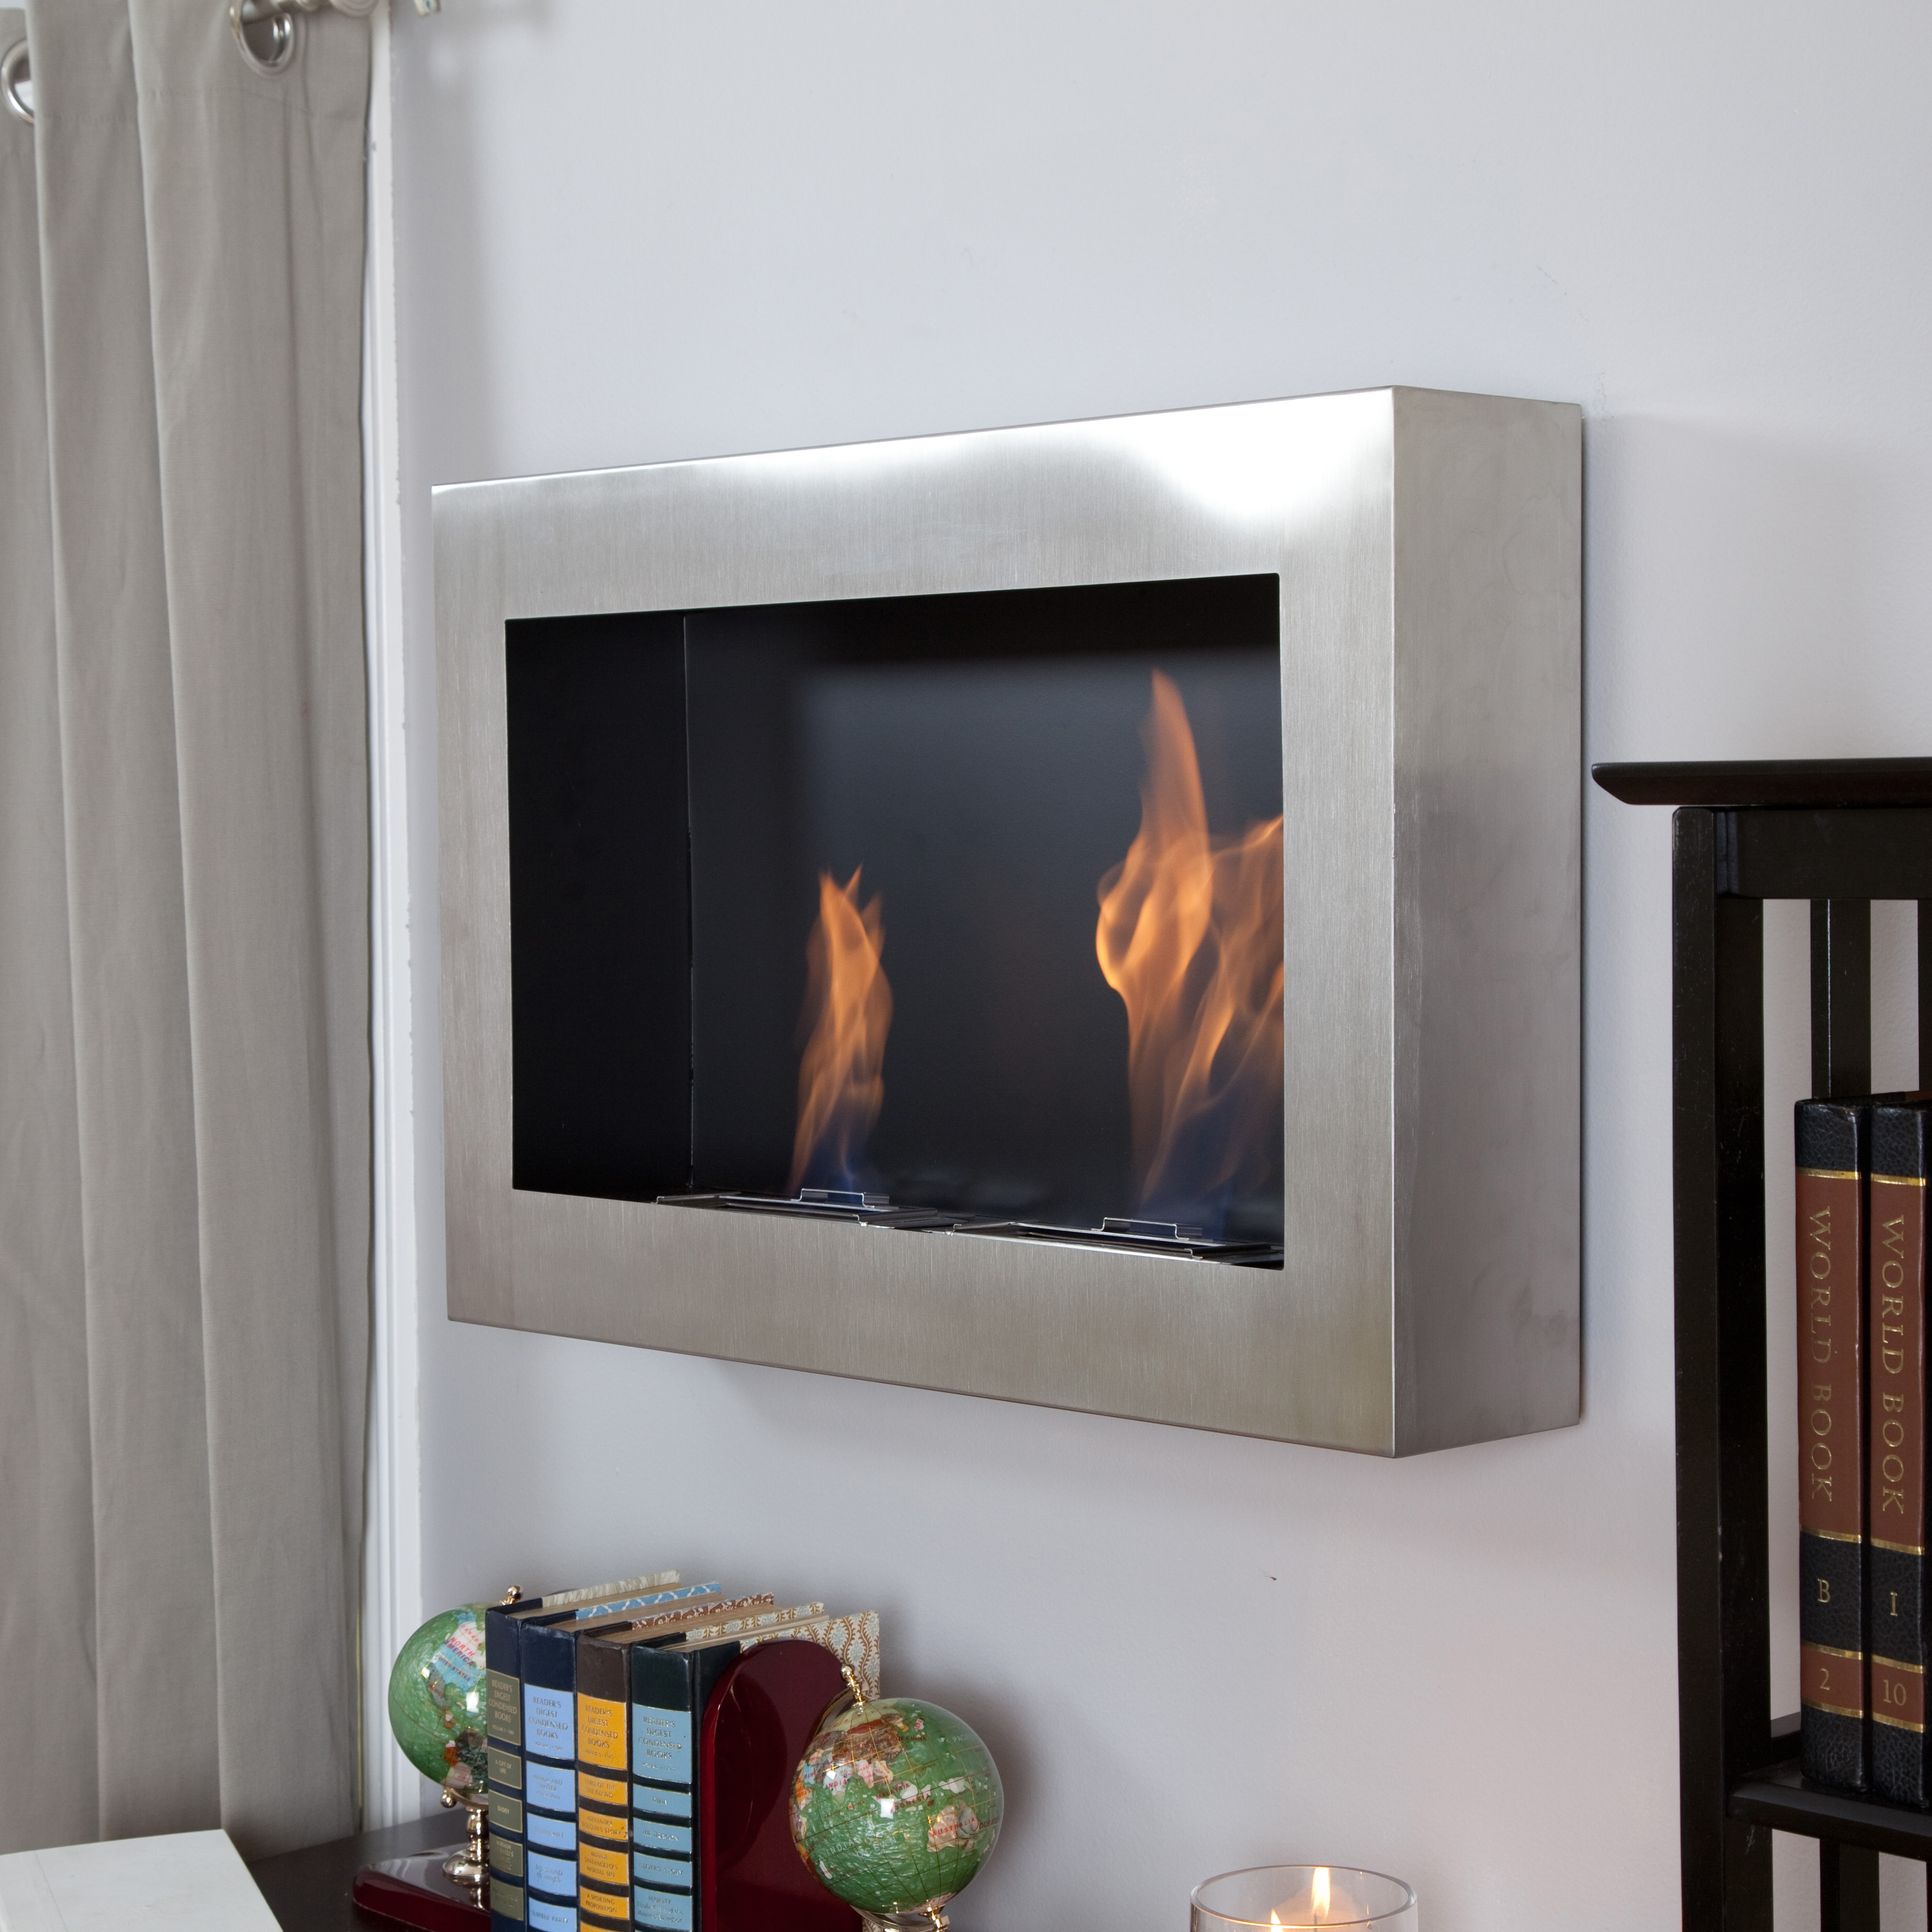 Stainless Steel Fireplace Anywhere Fireplace Soho Stainless Steel Indoor Fireplace